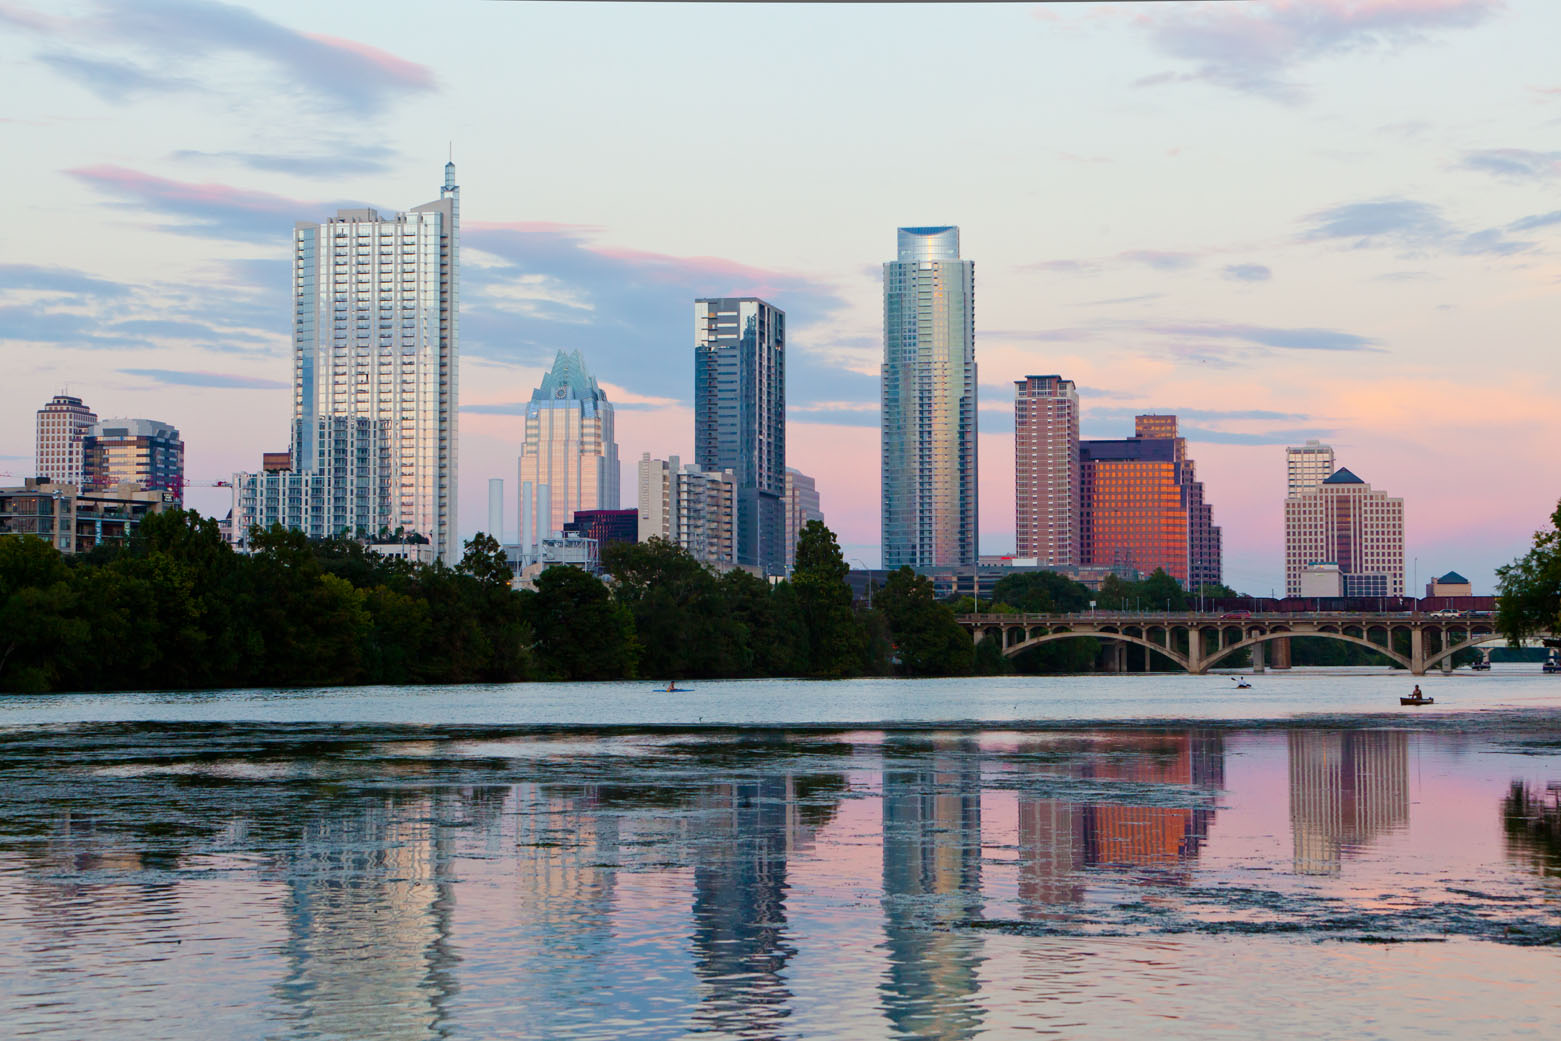 We are an Austin, Texas-based private equity firm that partners with management teams to grow outstanding middle-market companies.